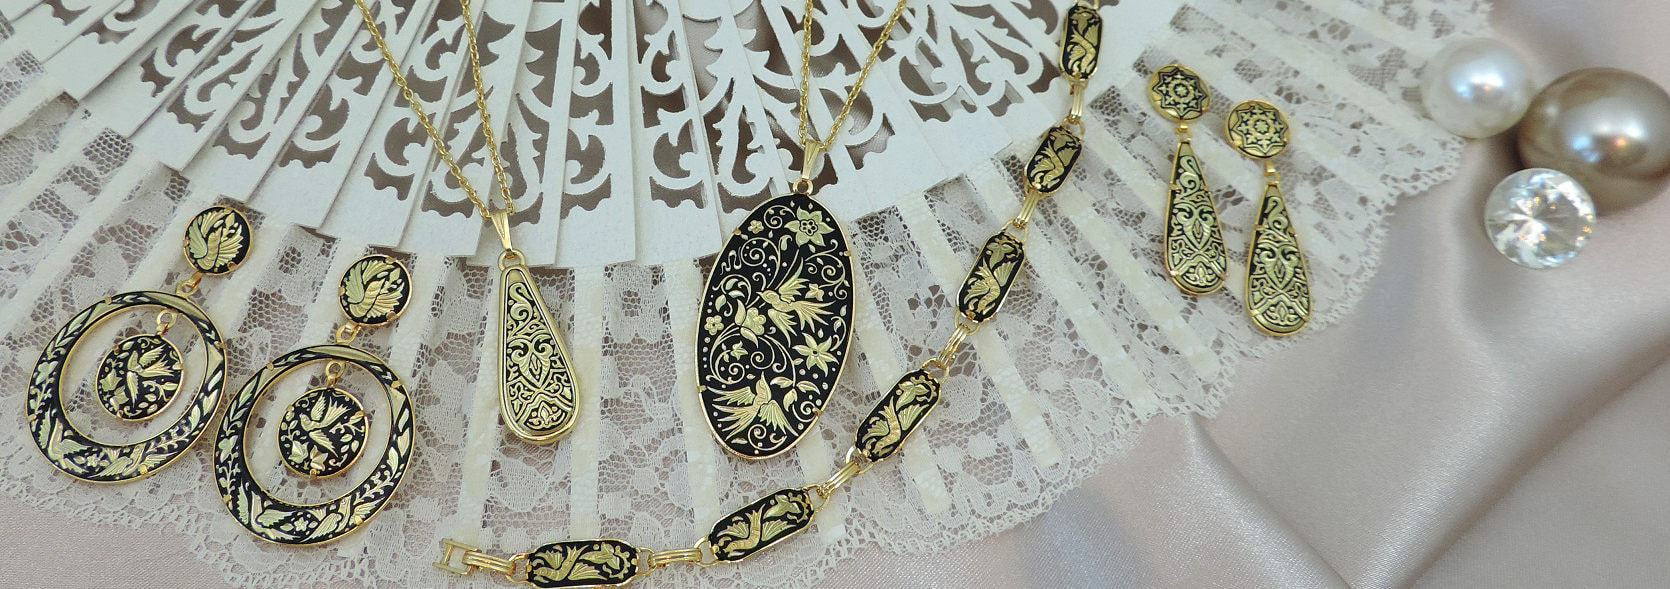 Damascene jewelry Toledo Spain